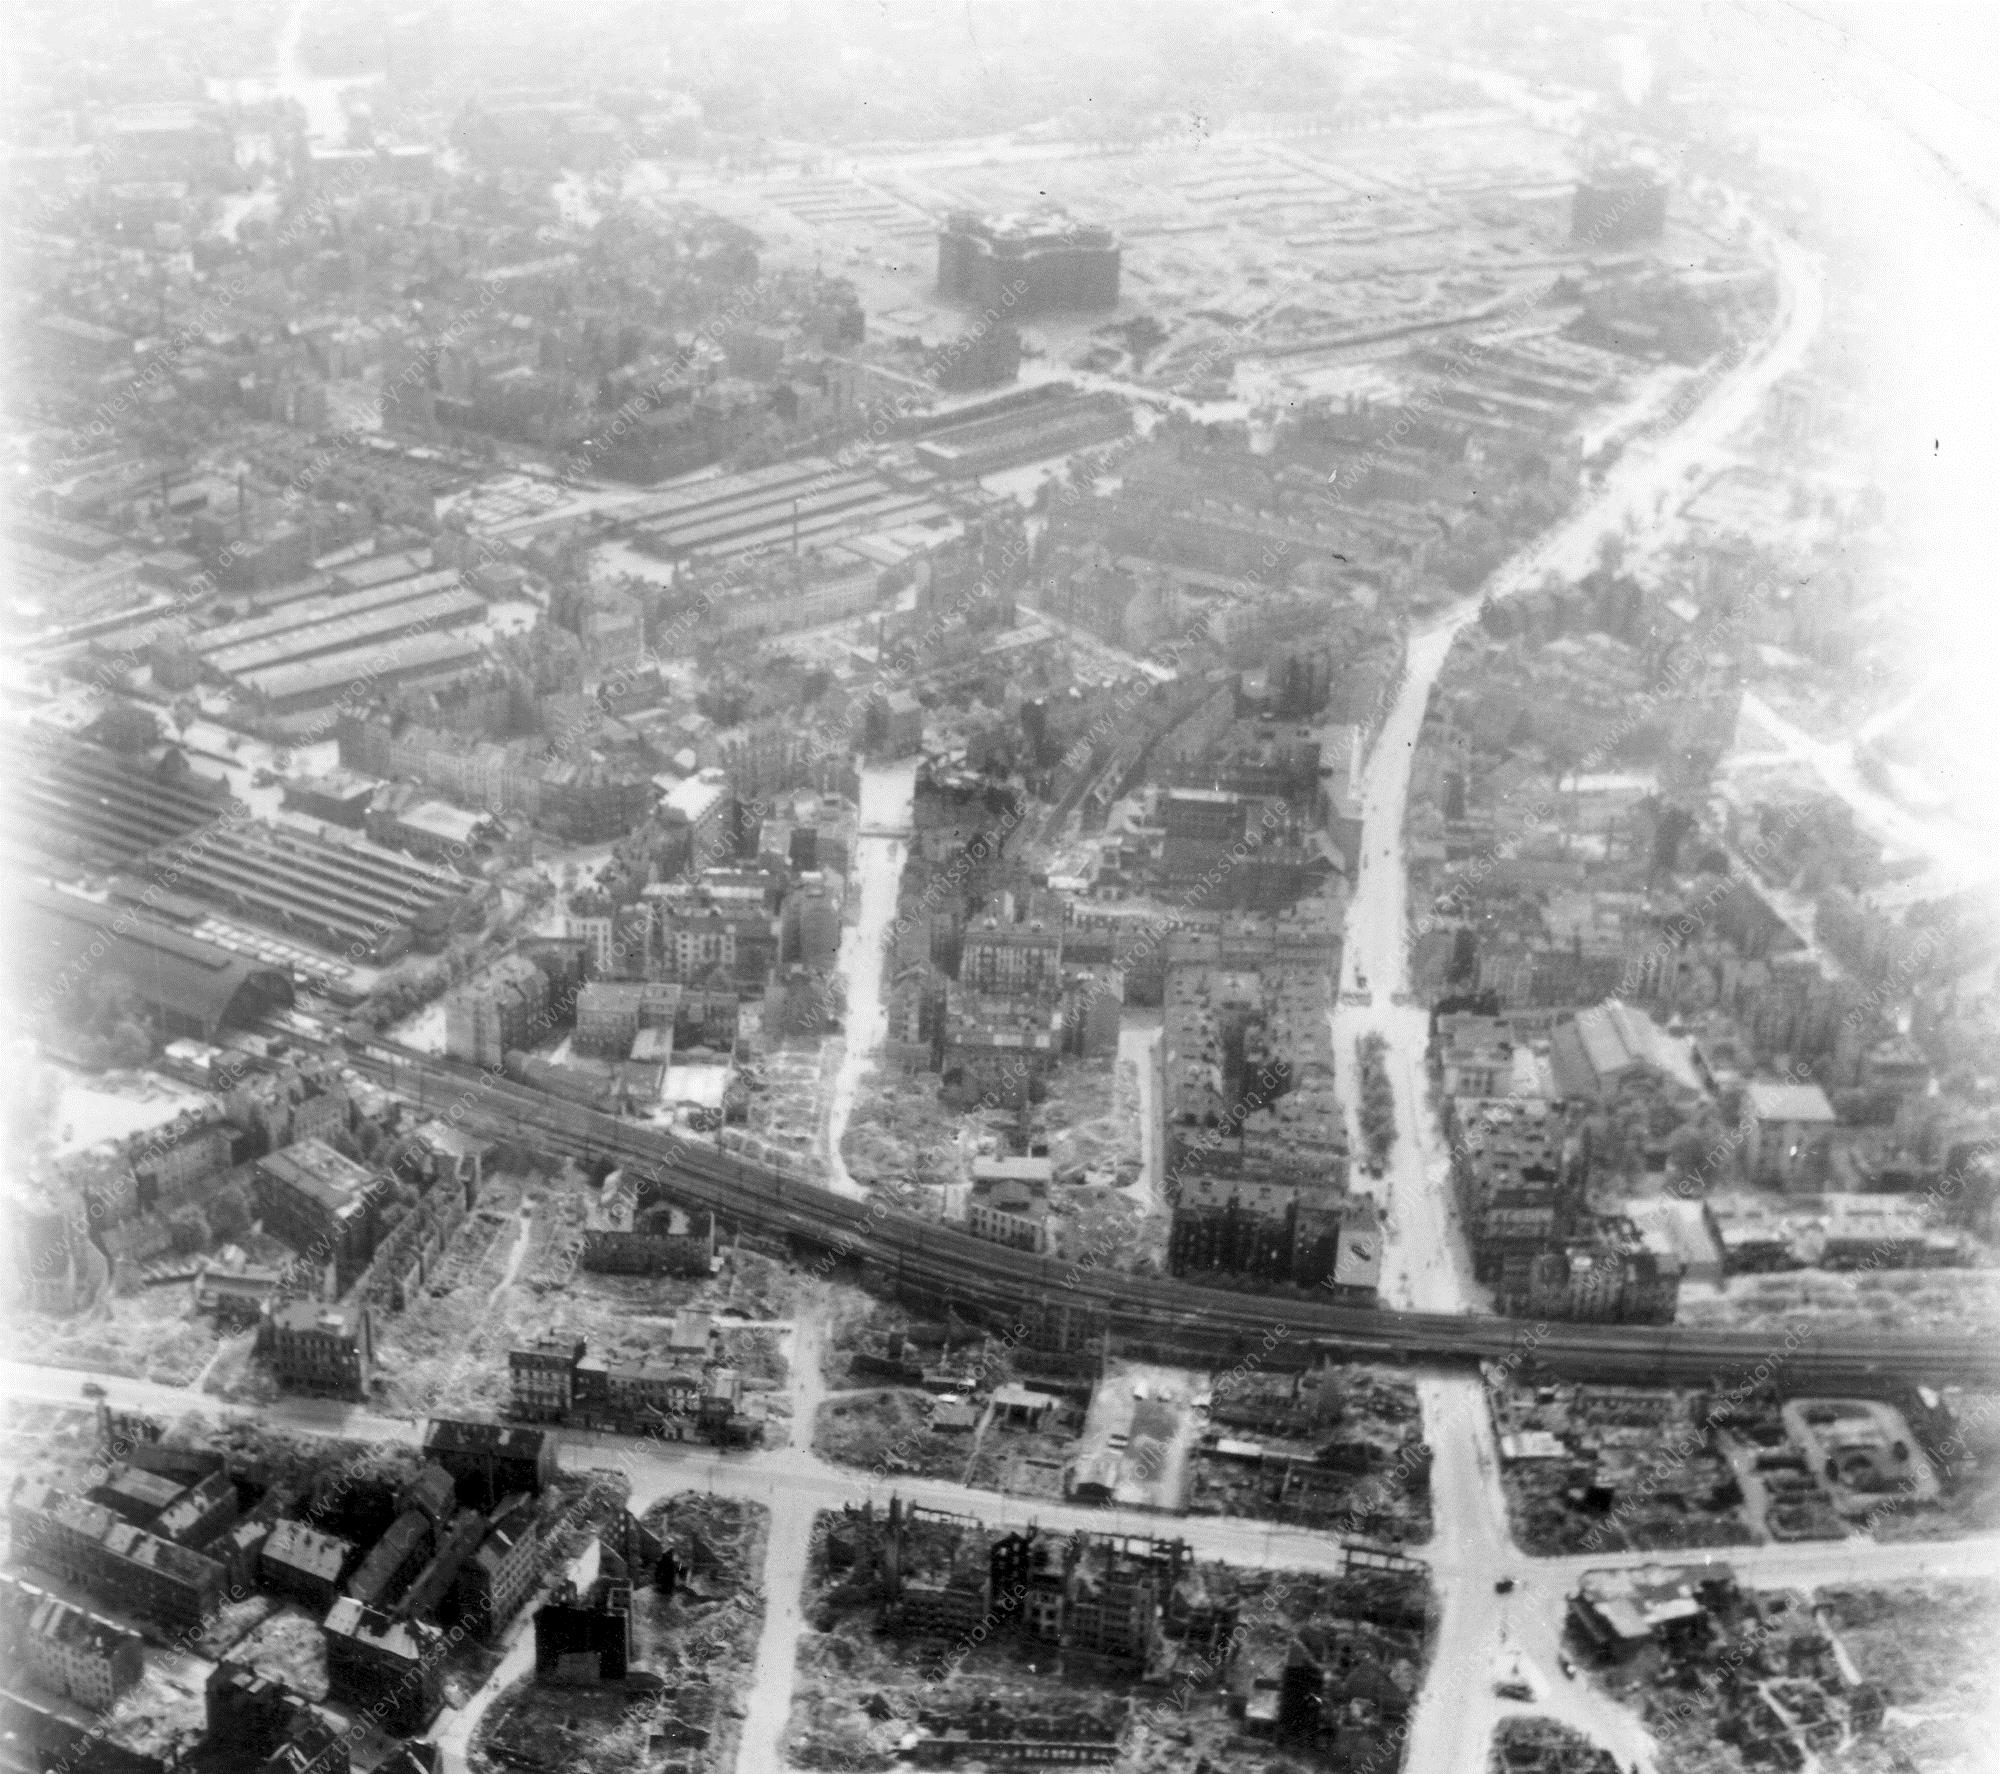 Hamburg from above: Aerial view after Allied air raids in World War II